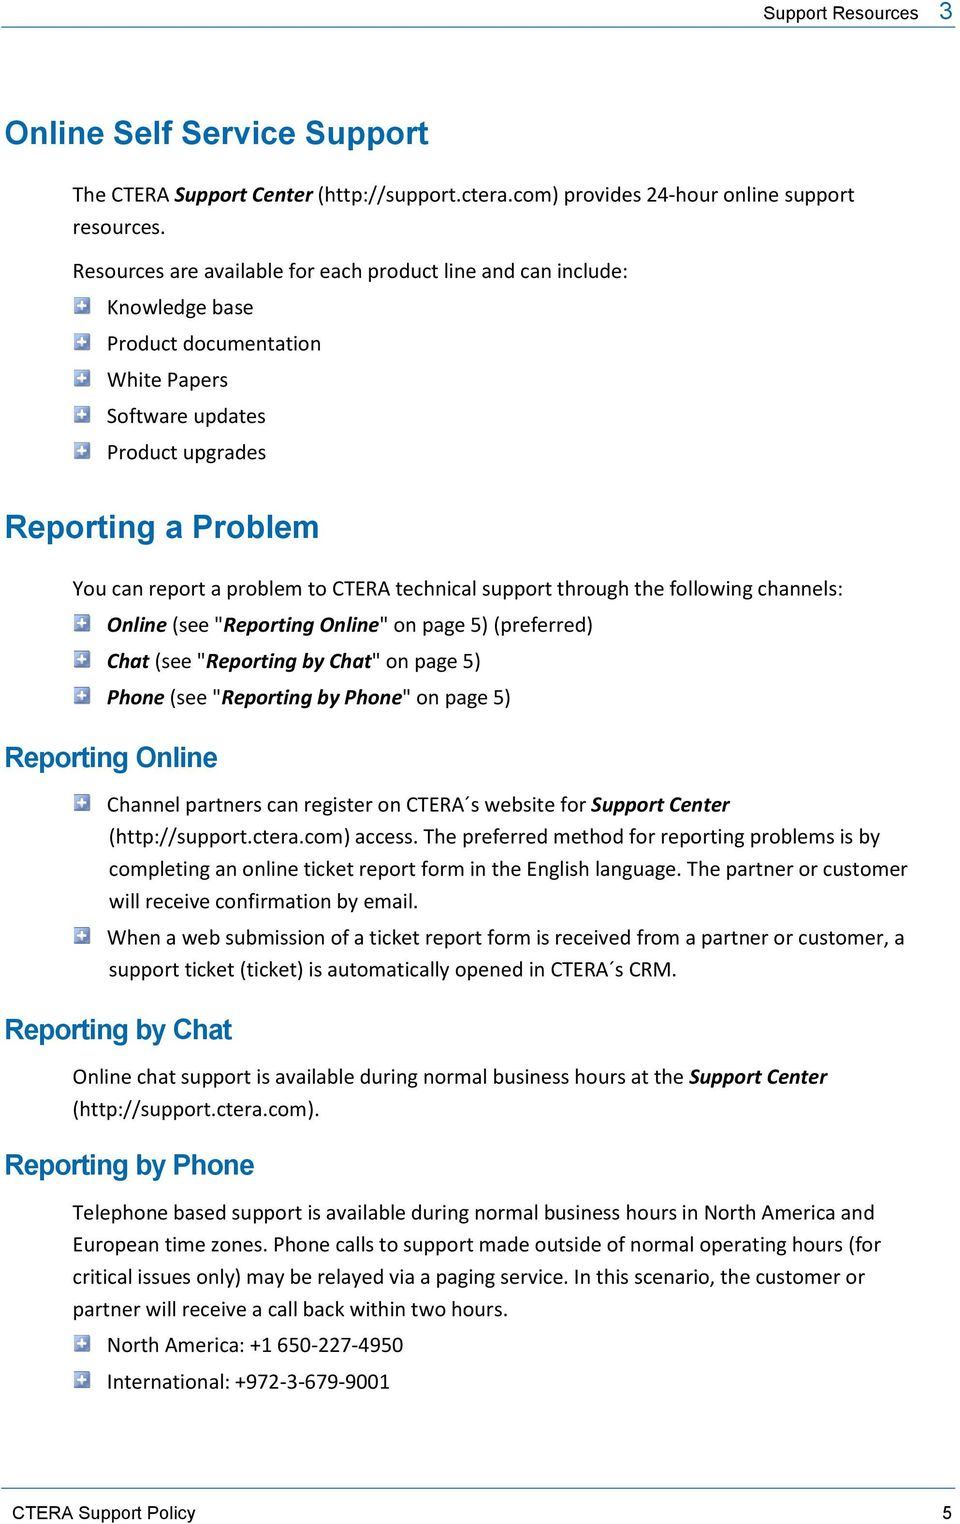 "CTERA technical support through the following channels: Online (see ""Reporting Online"" on page 5) (preferred) Chat (see ""Reporting by Chat"" on page 5) Phone (see ""Reporting by Phone"" on page 5)"